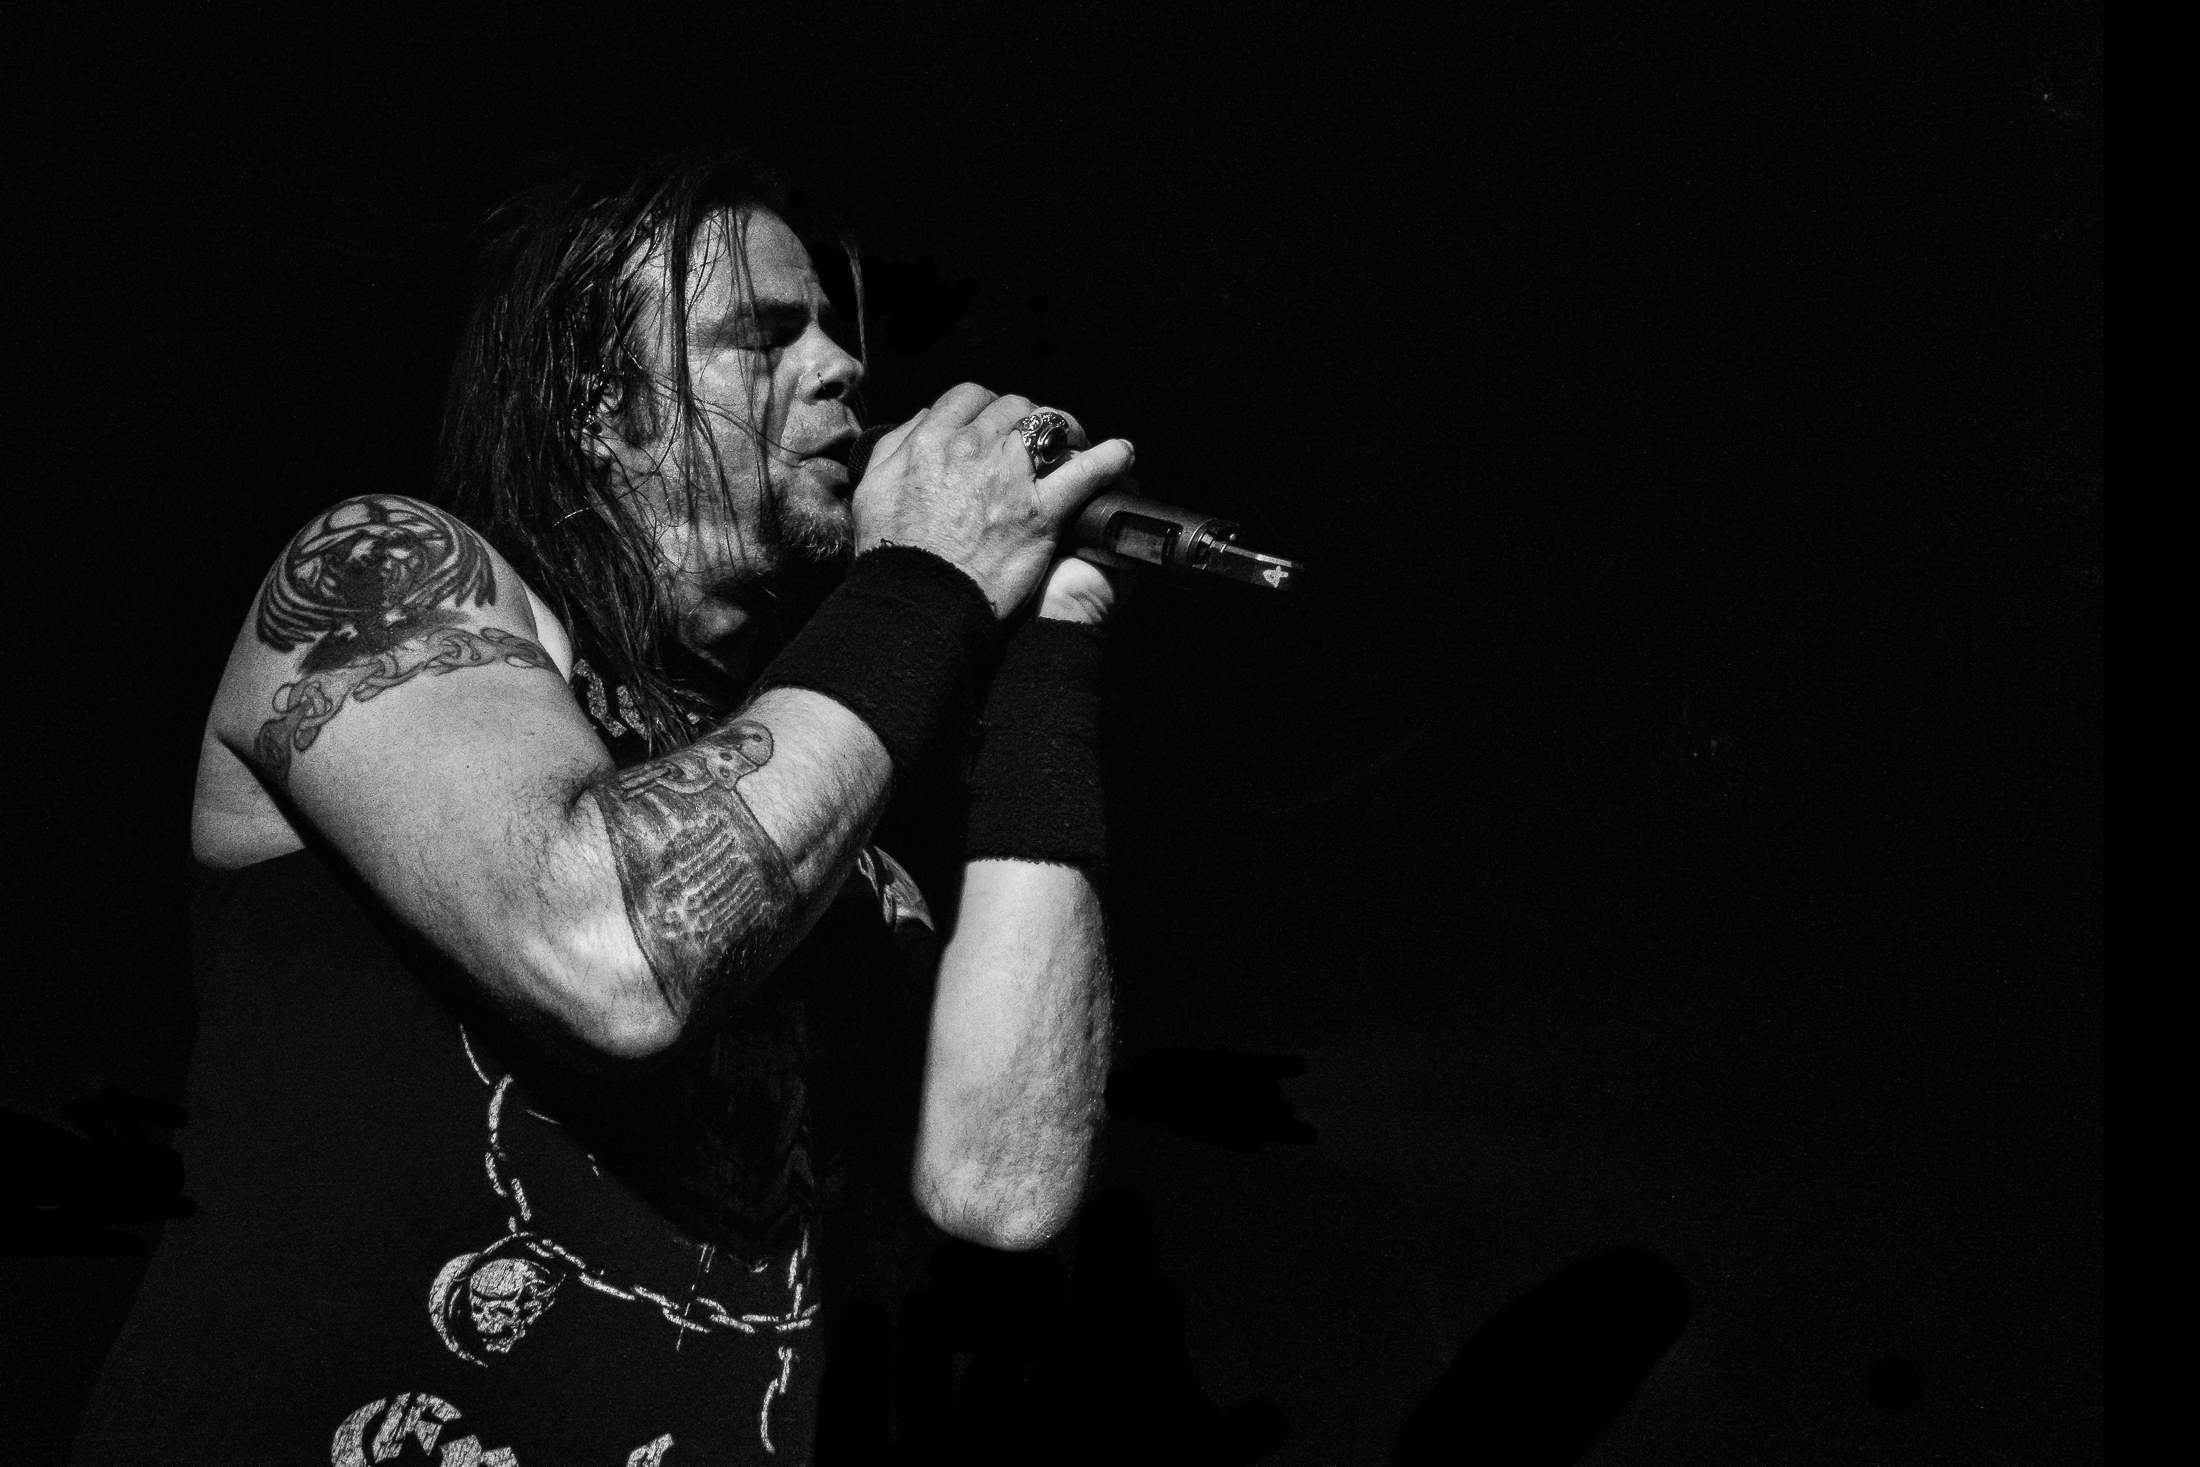 queensryche - melbourne - 2016 - paul tadday photography - 31.jpg